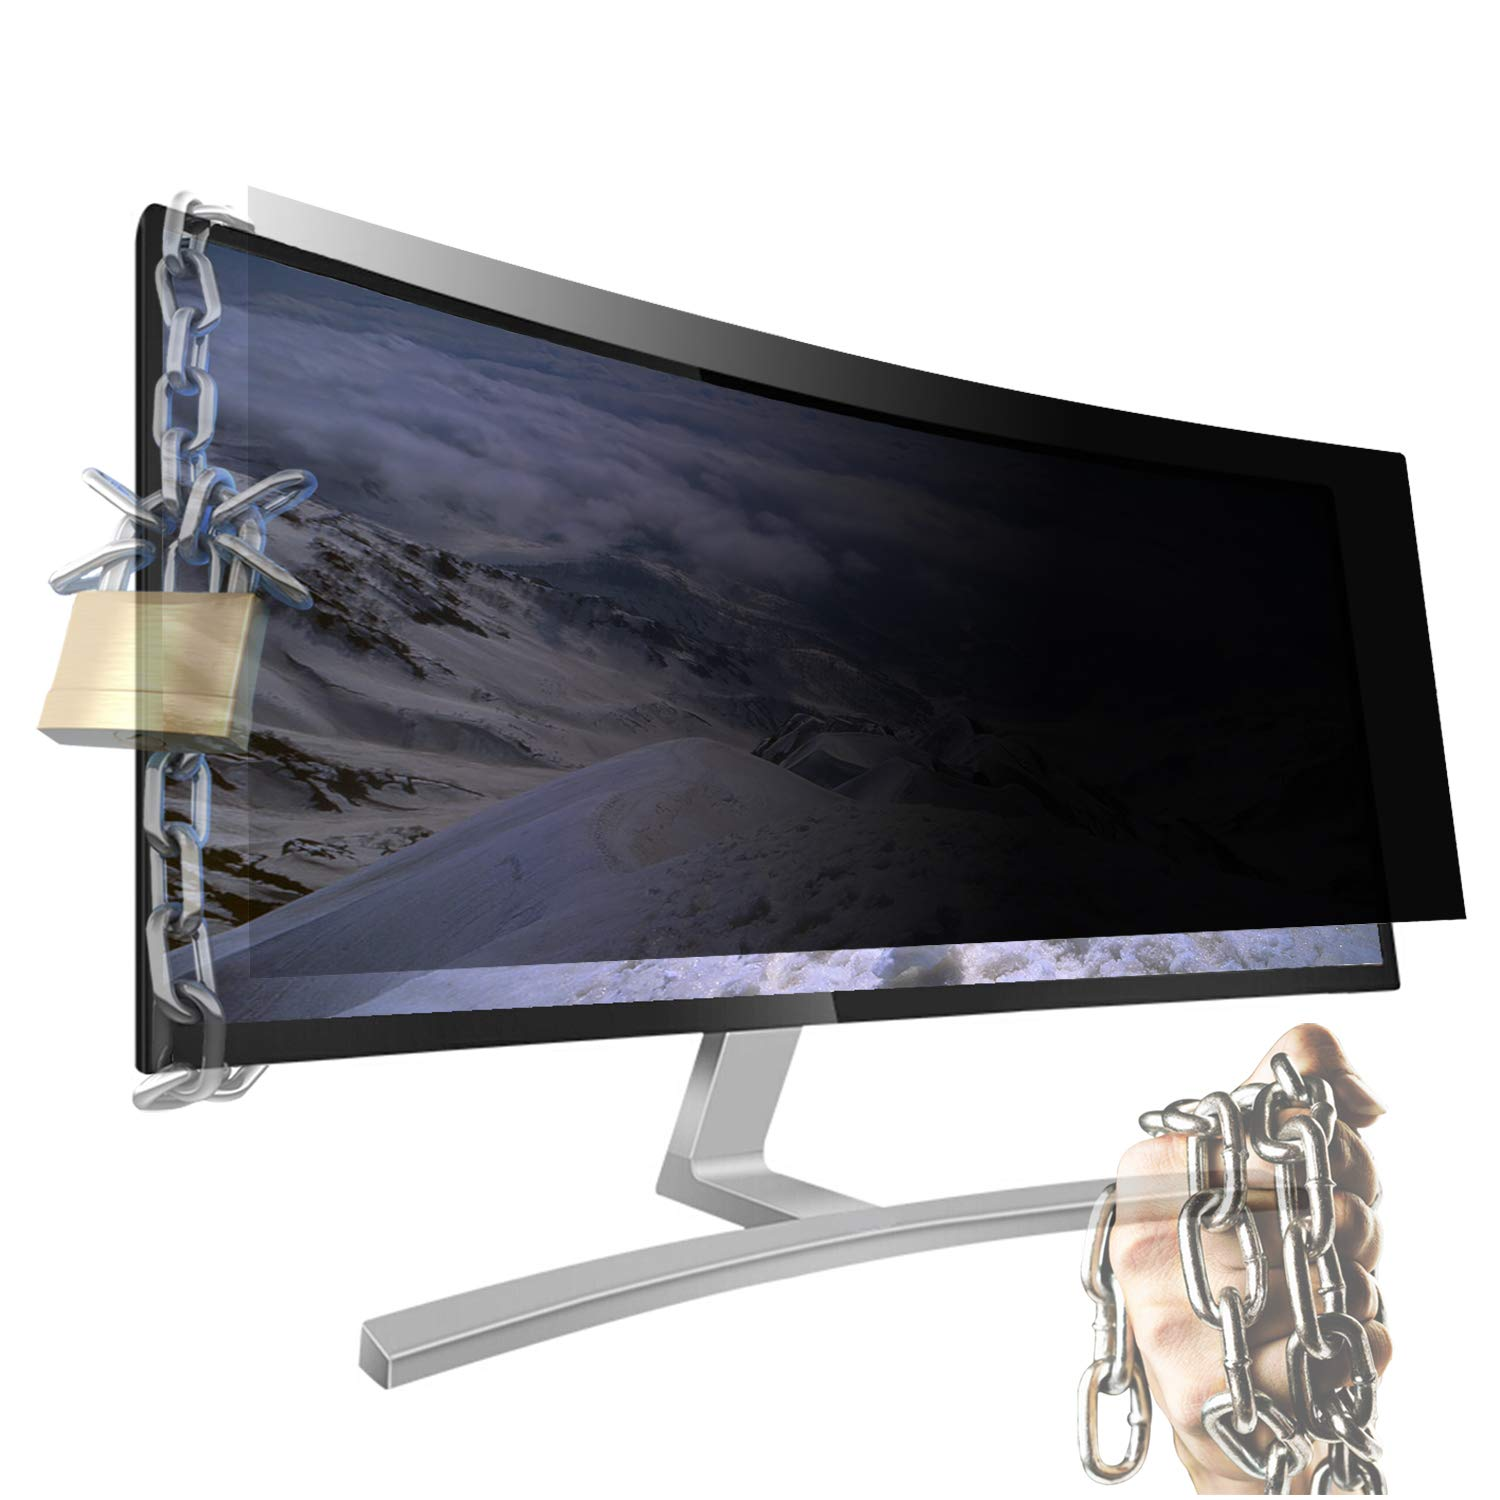 Xianan 34'' inch Widescreen 21:9 Screen Filters Anti-Peeping Privacy Screen Filter Screen Protectors 31.43x13.18inch/798.2x334.8mm Radiation Anti-Glare for Computer Monitors